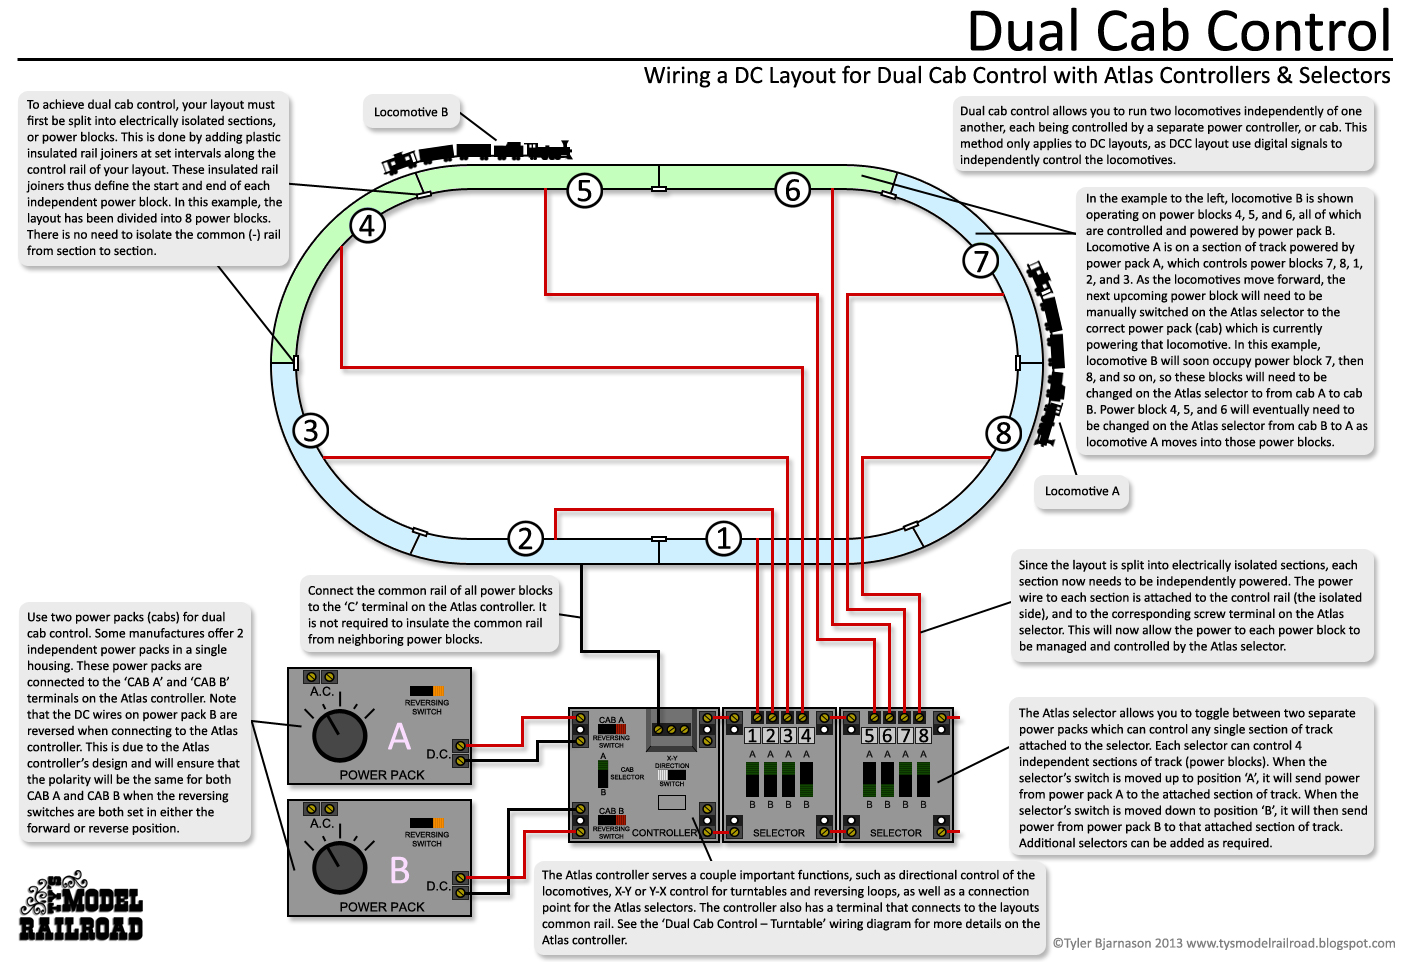 medium resolution of how to wire a layout for dual cab control using an atlas controller and selectors